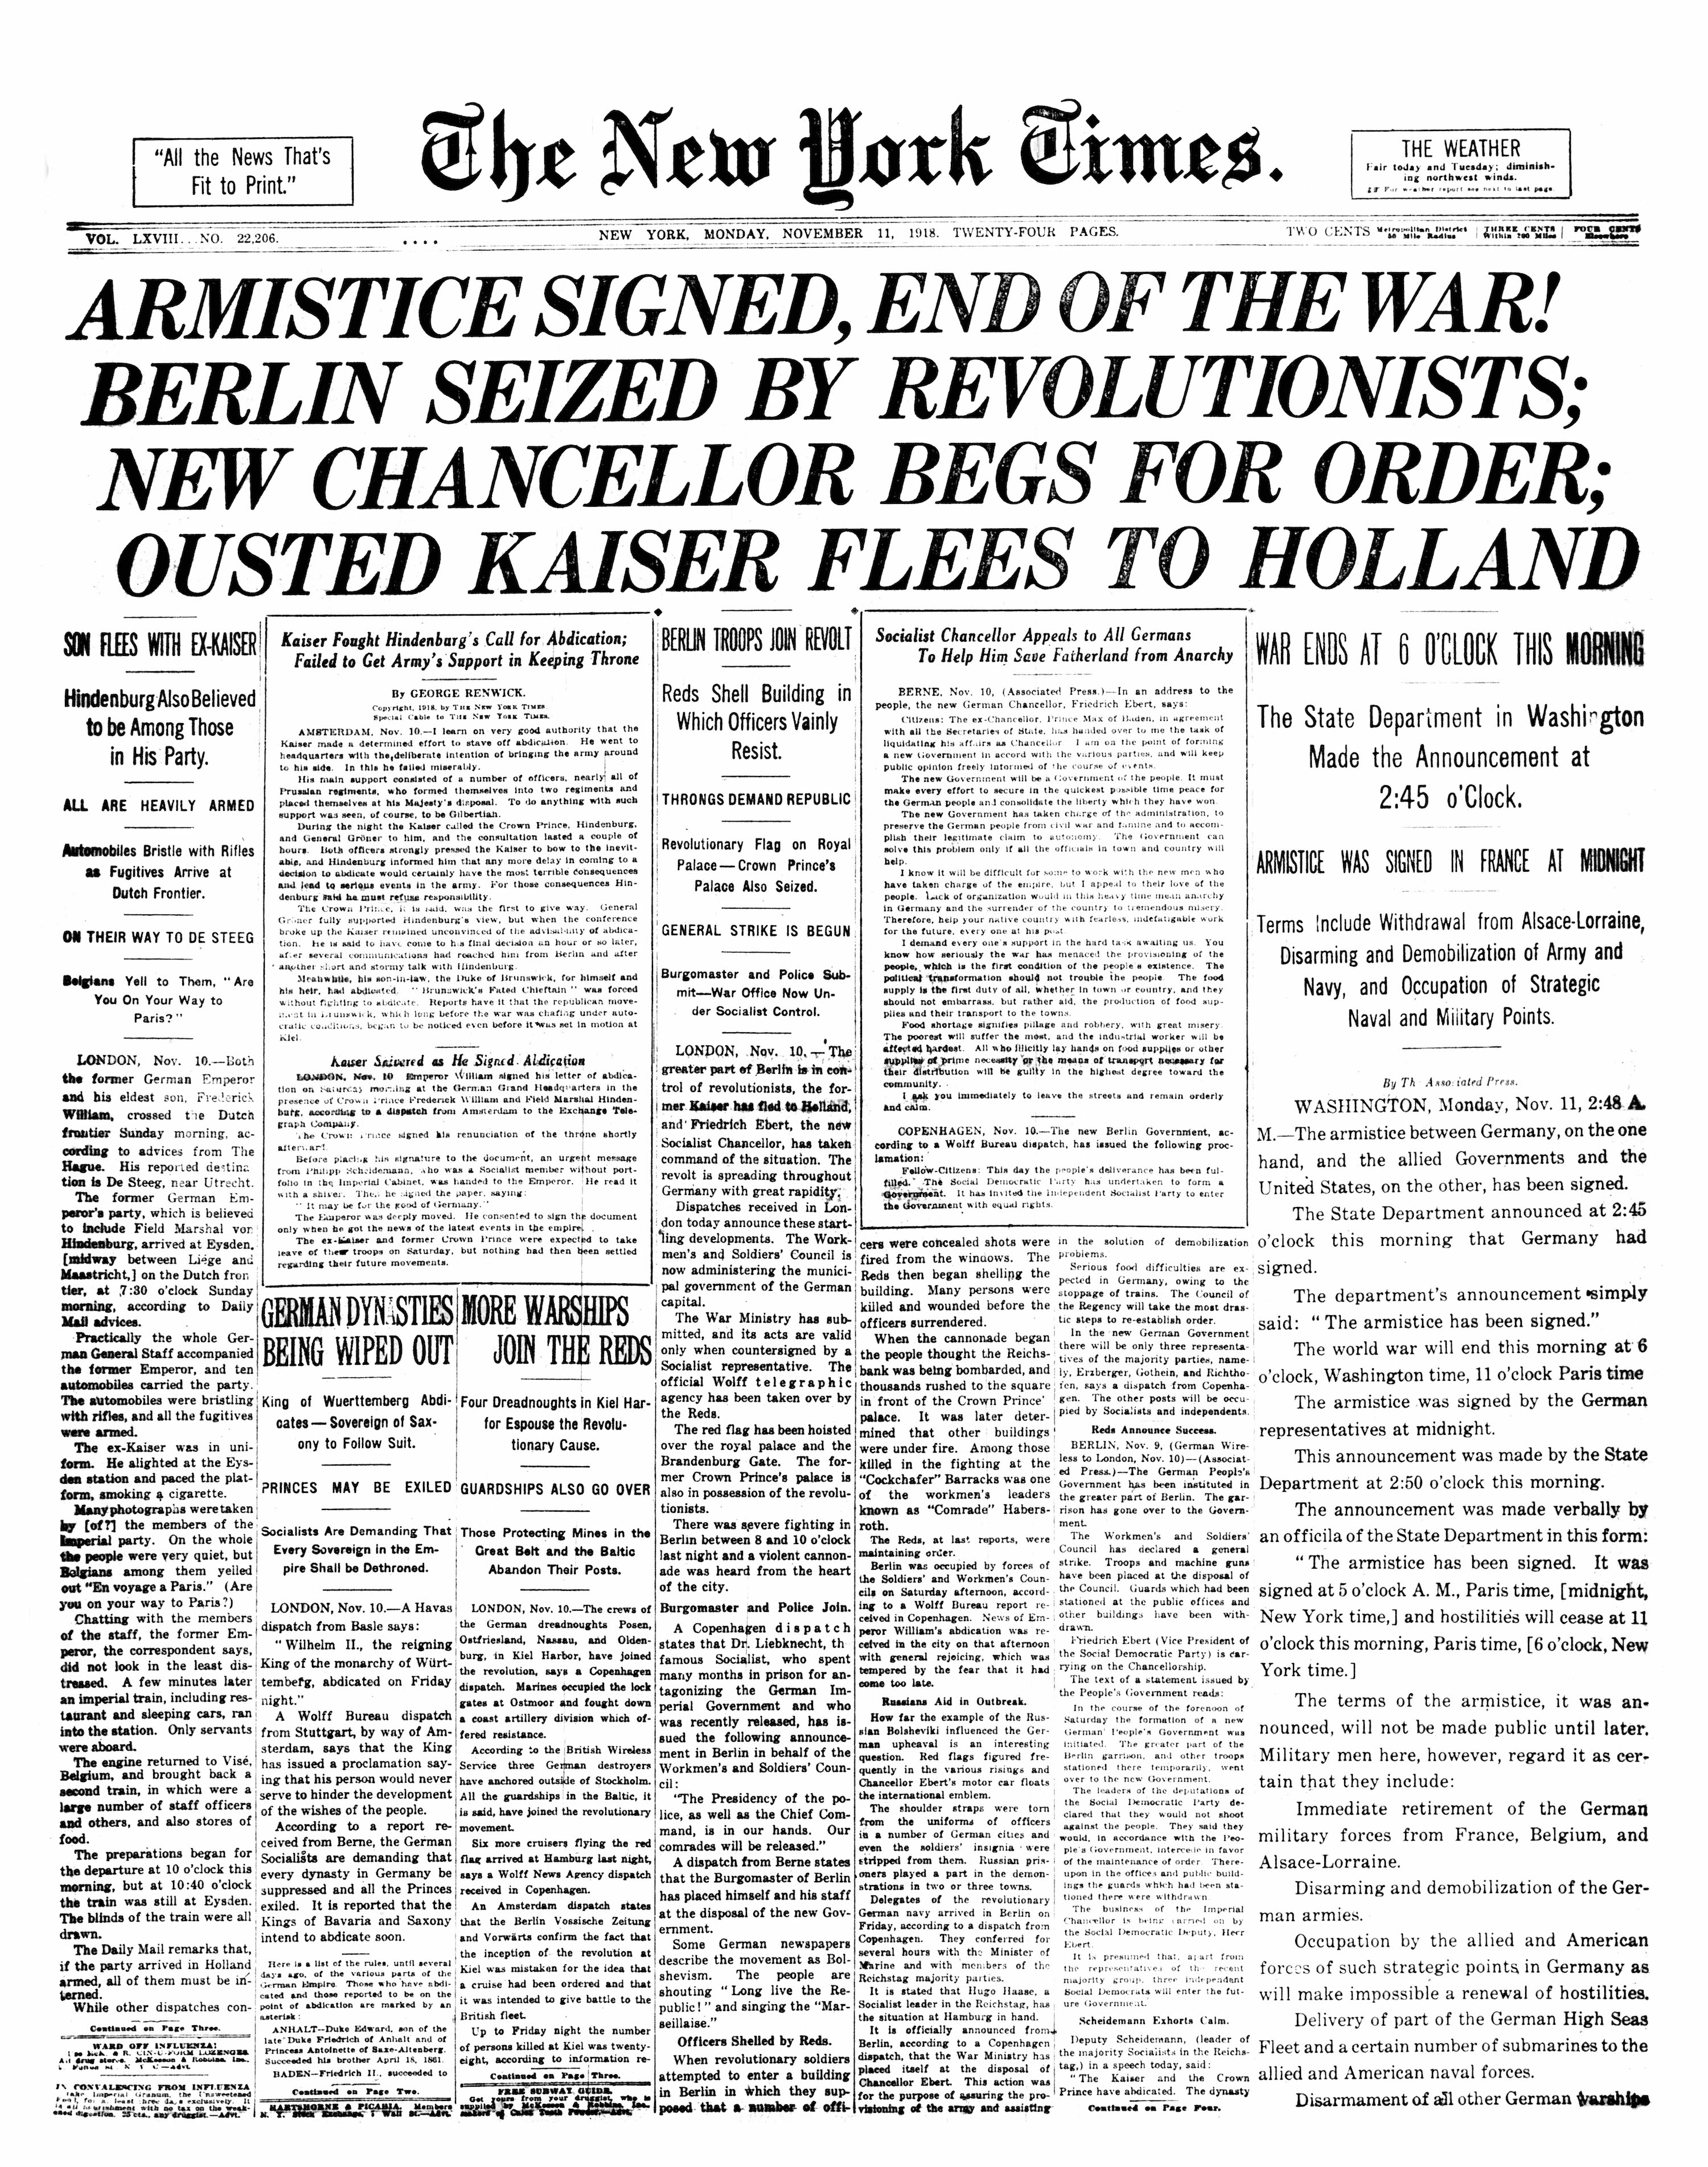 New York Times front page, 11 November 1918.